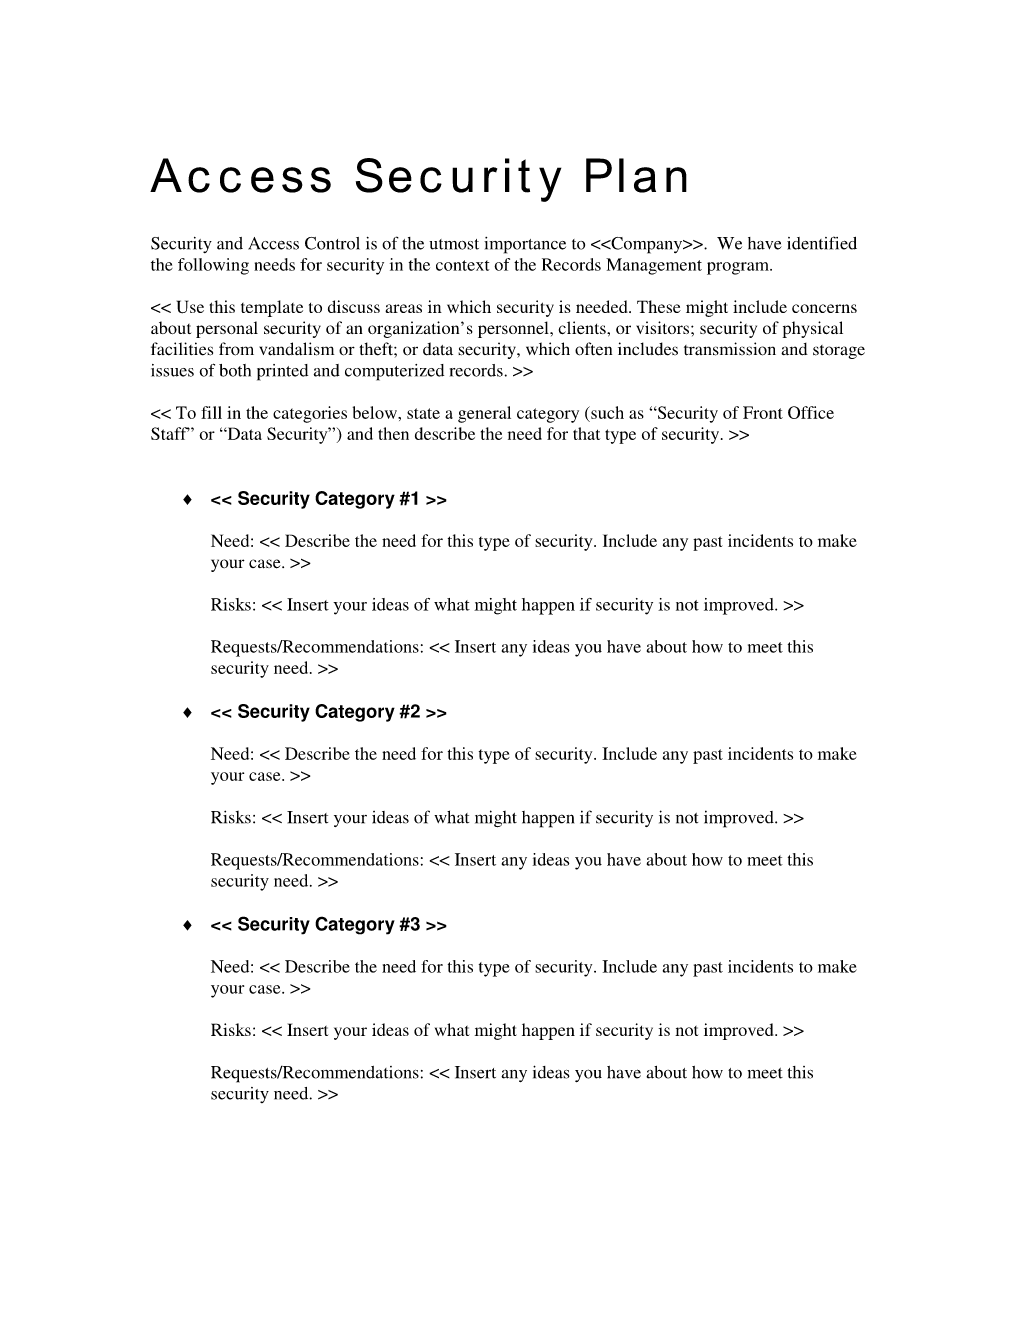 How To Write Your Own Records Access Security Plan